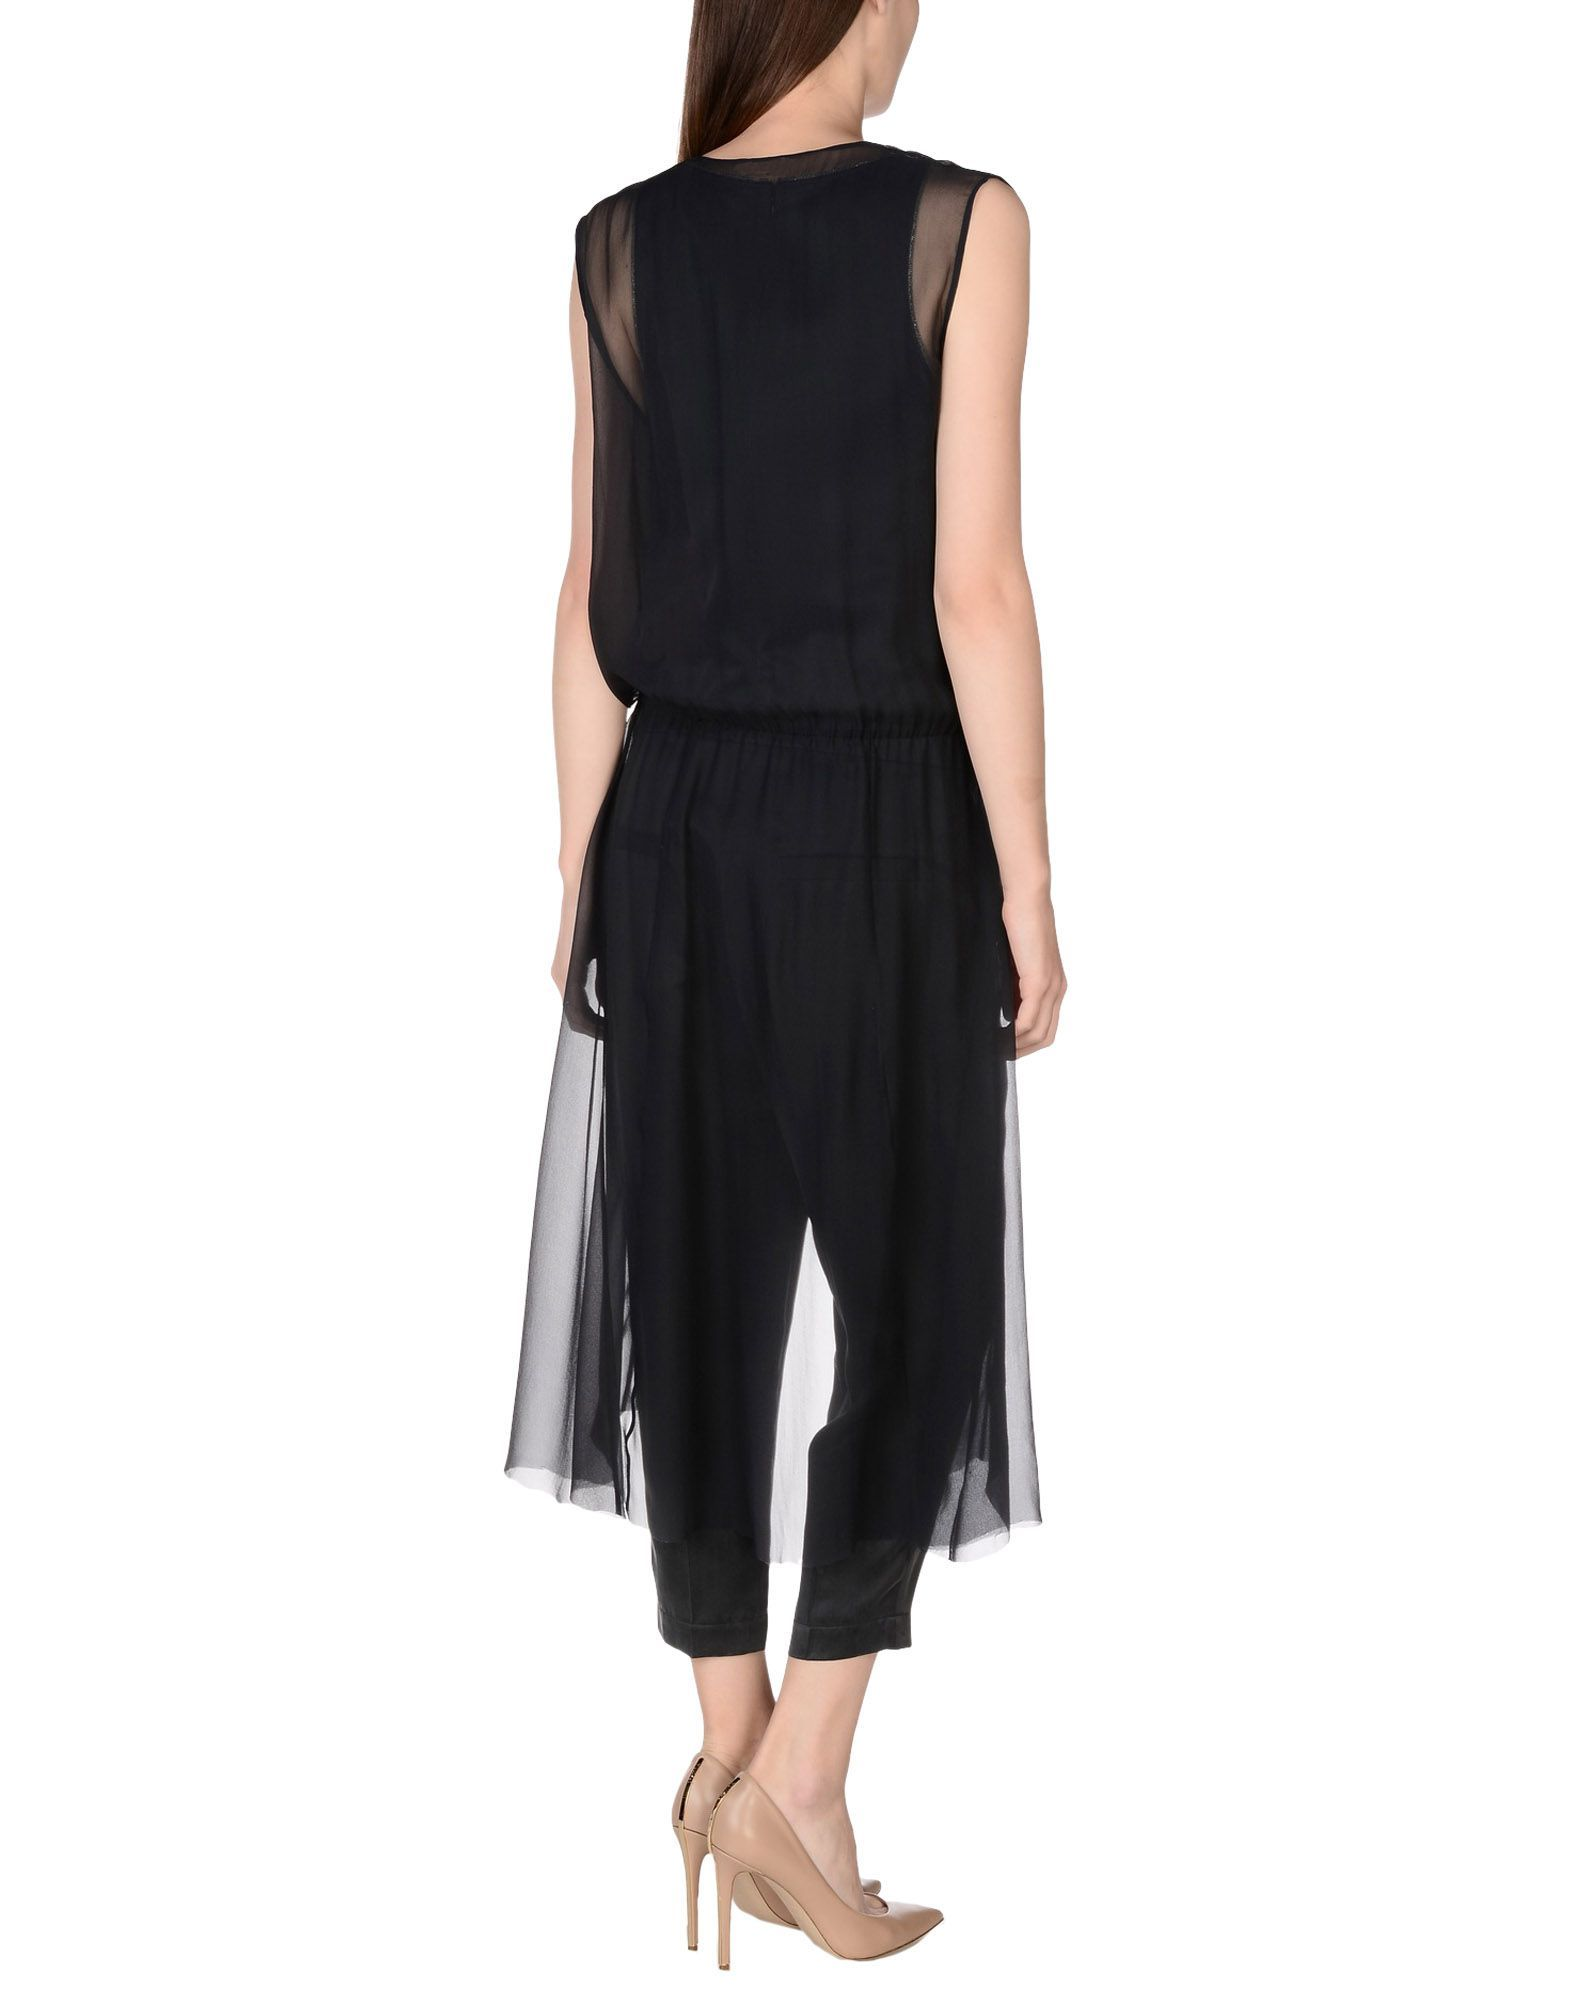 DUNGAREES Brunello Cucinelli Black Woman Silk